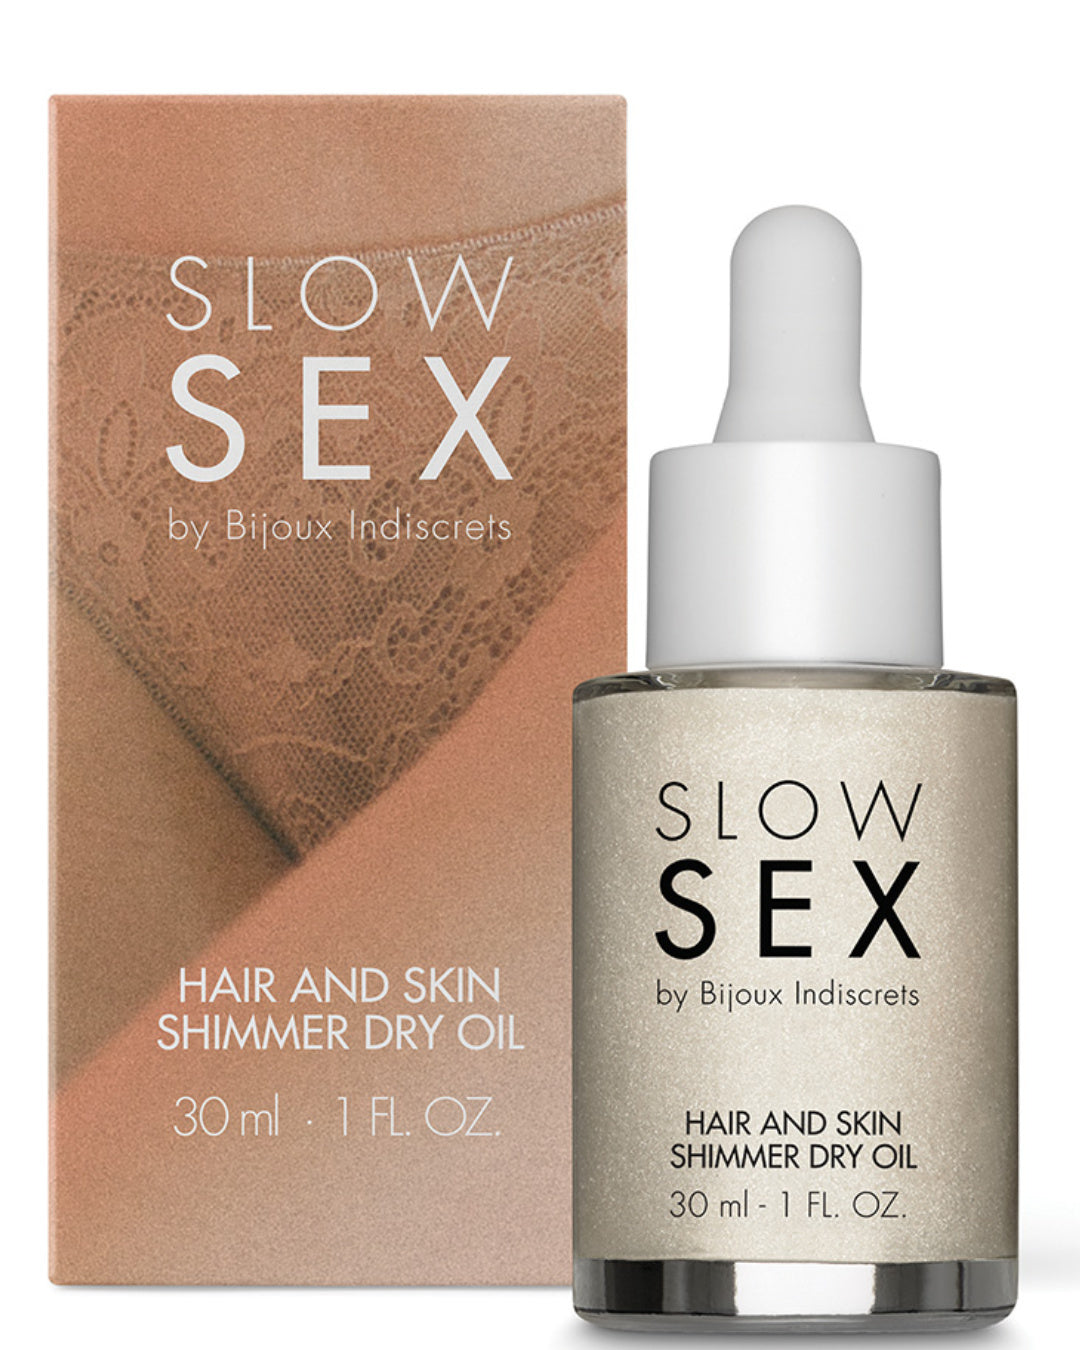 Bijoux Indiscrets Slow Sex Hair & Skin Shimmer Dry Oil next to box